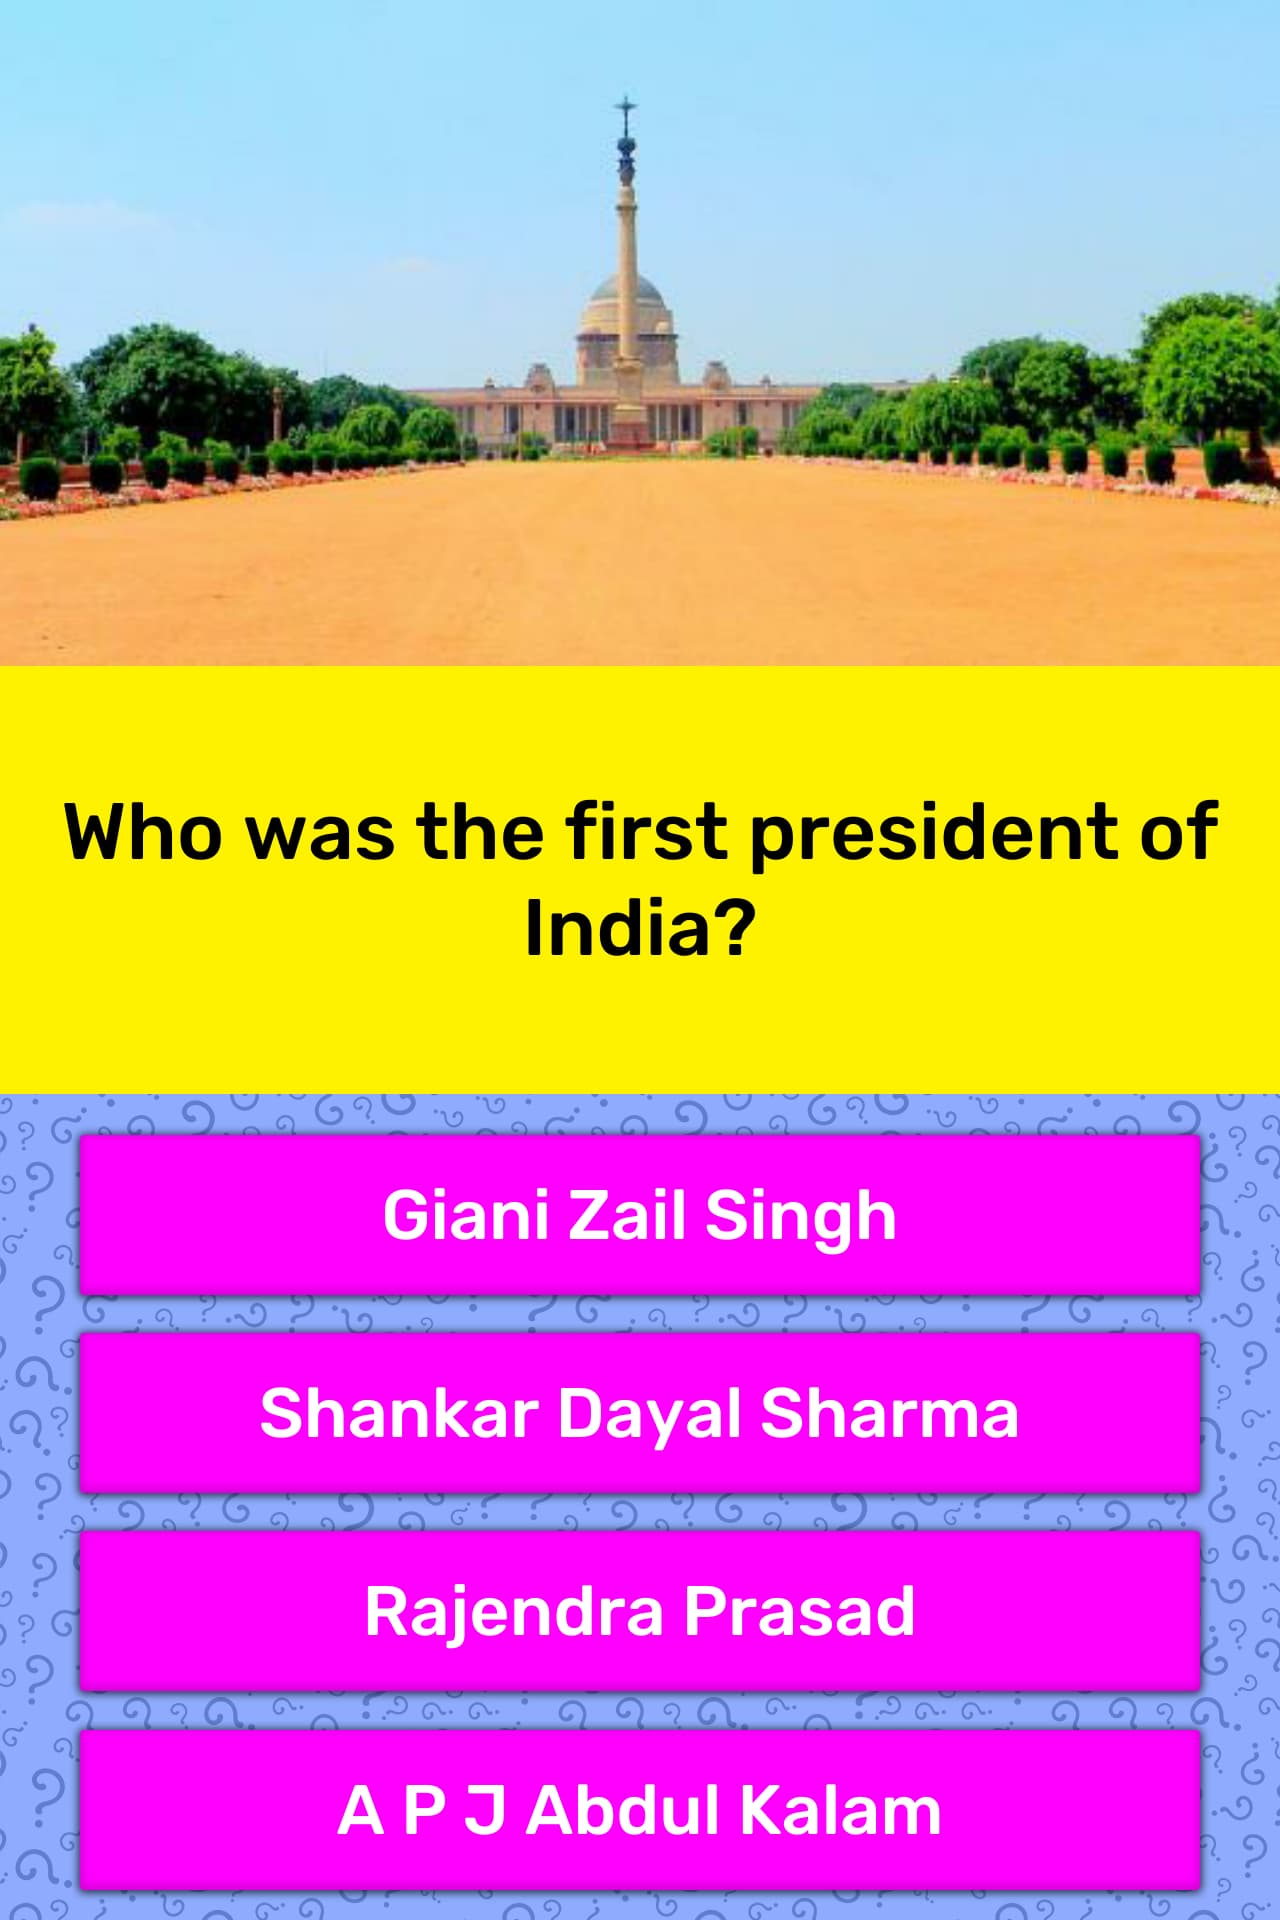 Who was the first president of India? | Trivia Answers